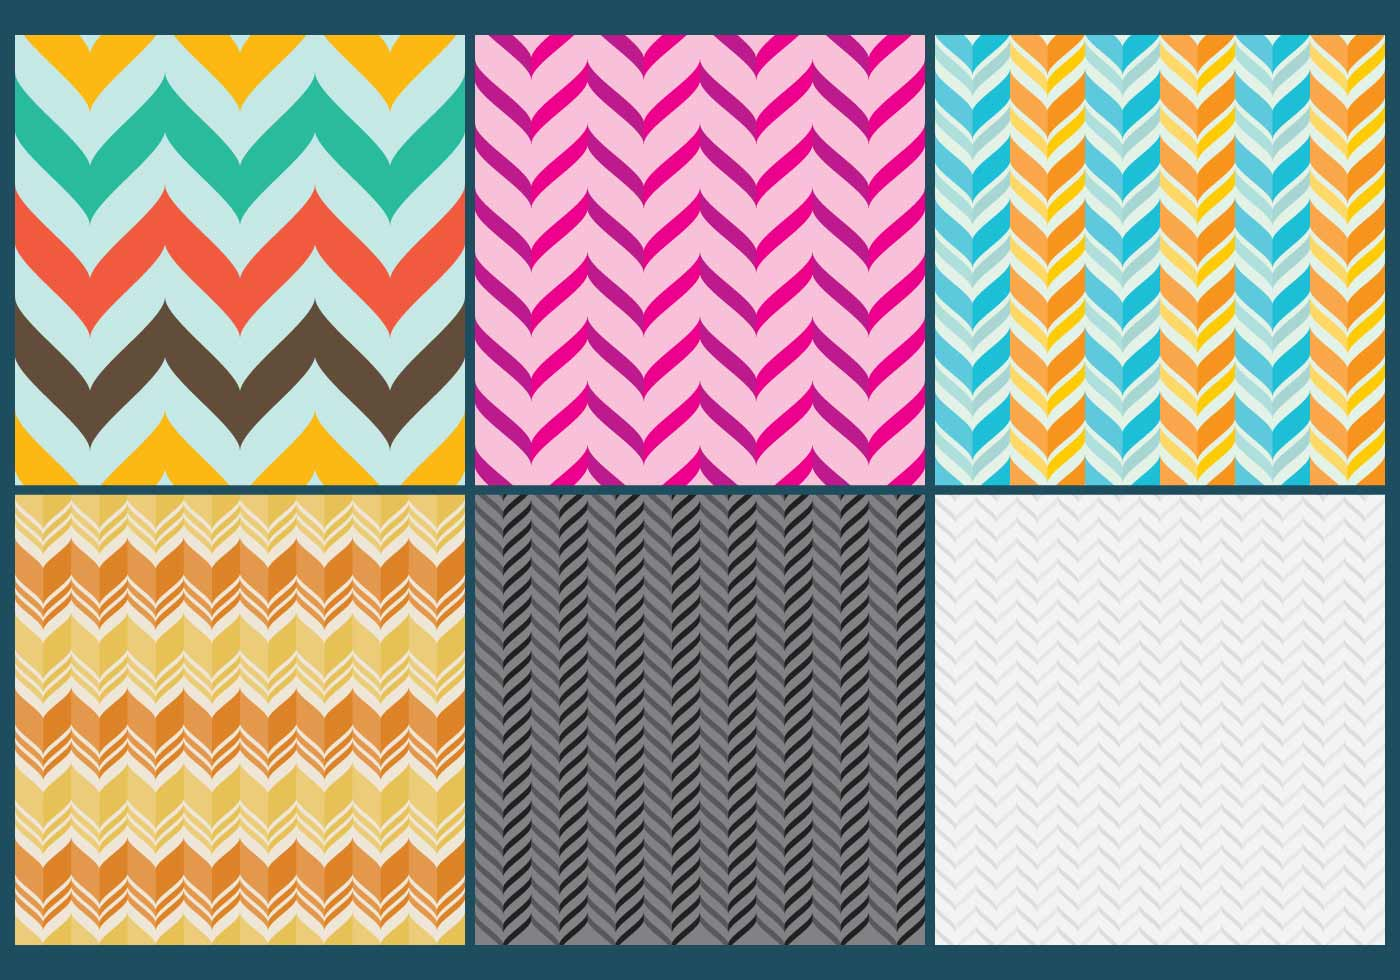 Chevron print background - Curved Chevron Pattern Vectors Download Free Vector Art Stock Graphics Images